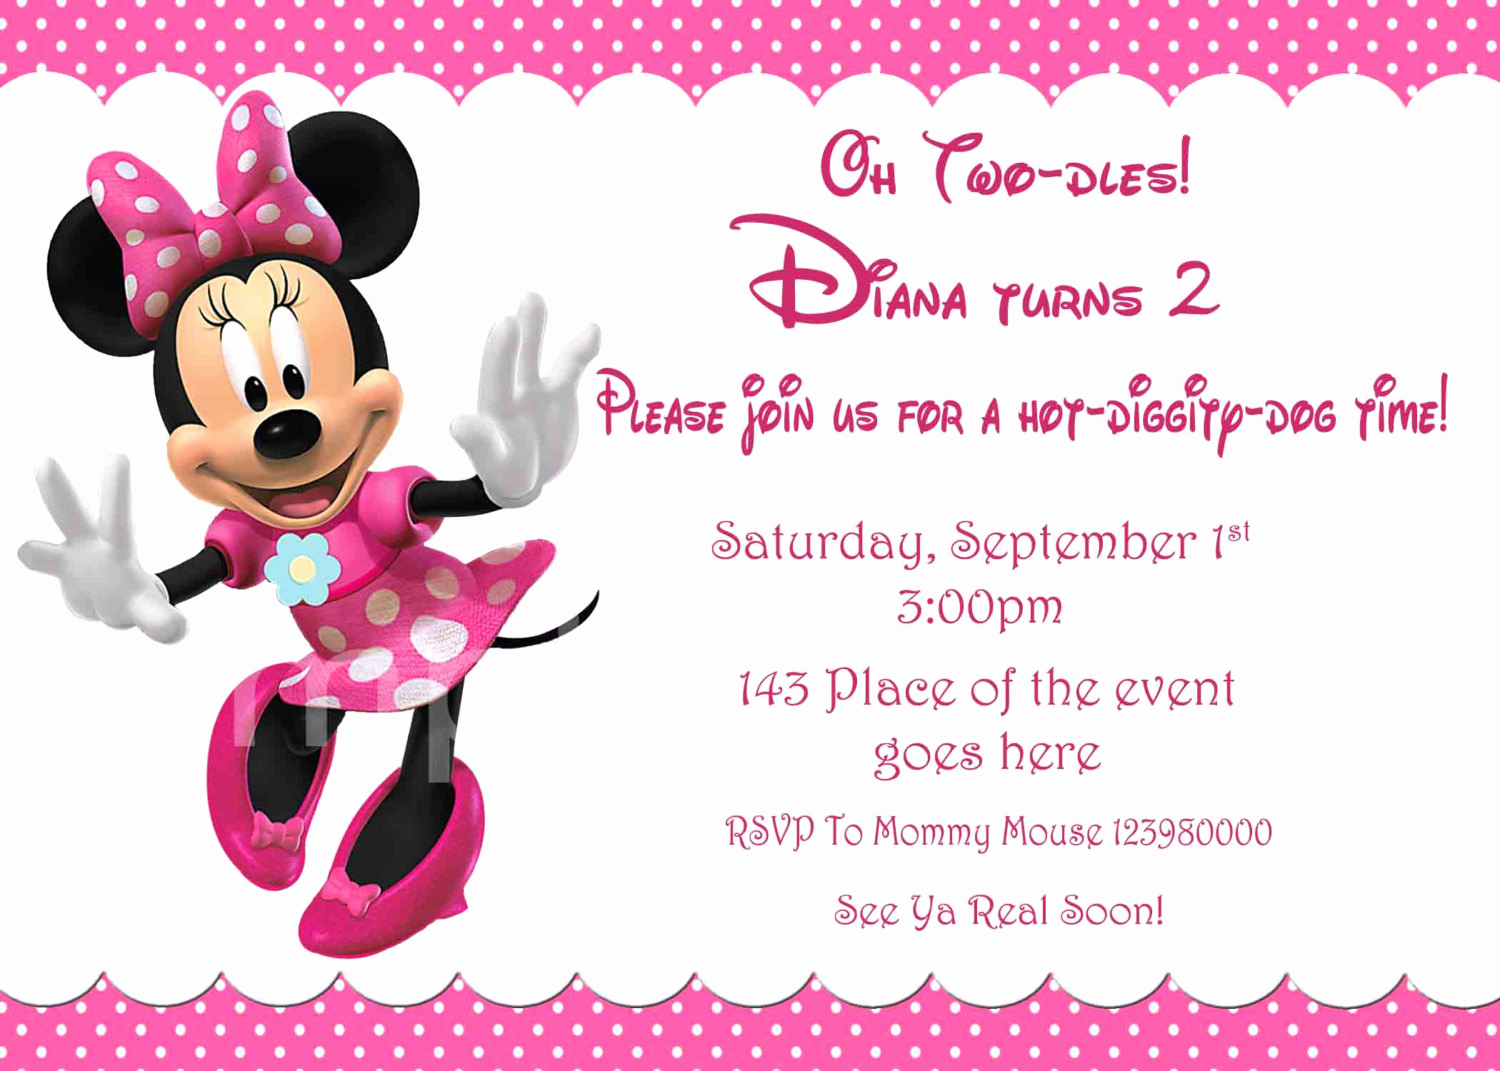 Minnie Mouse Invitation Maker Elegant Minnie Mouse Invitation Minnie Mouse Birthday Invitation